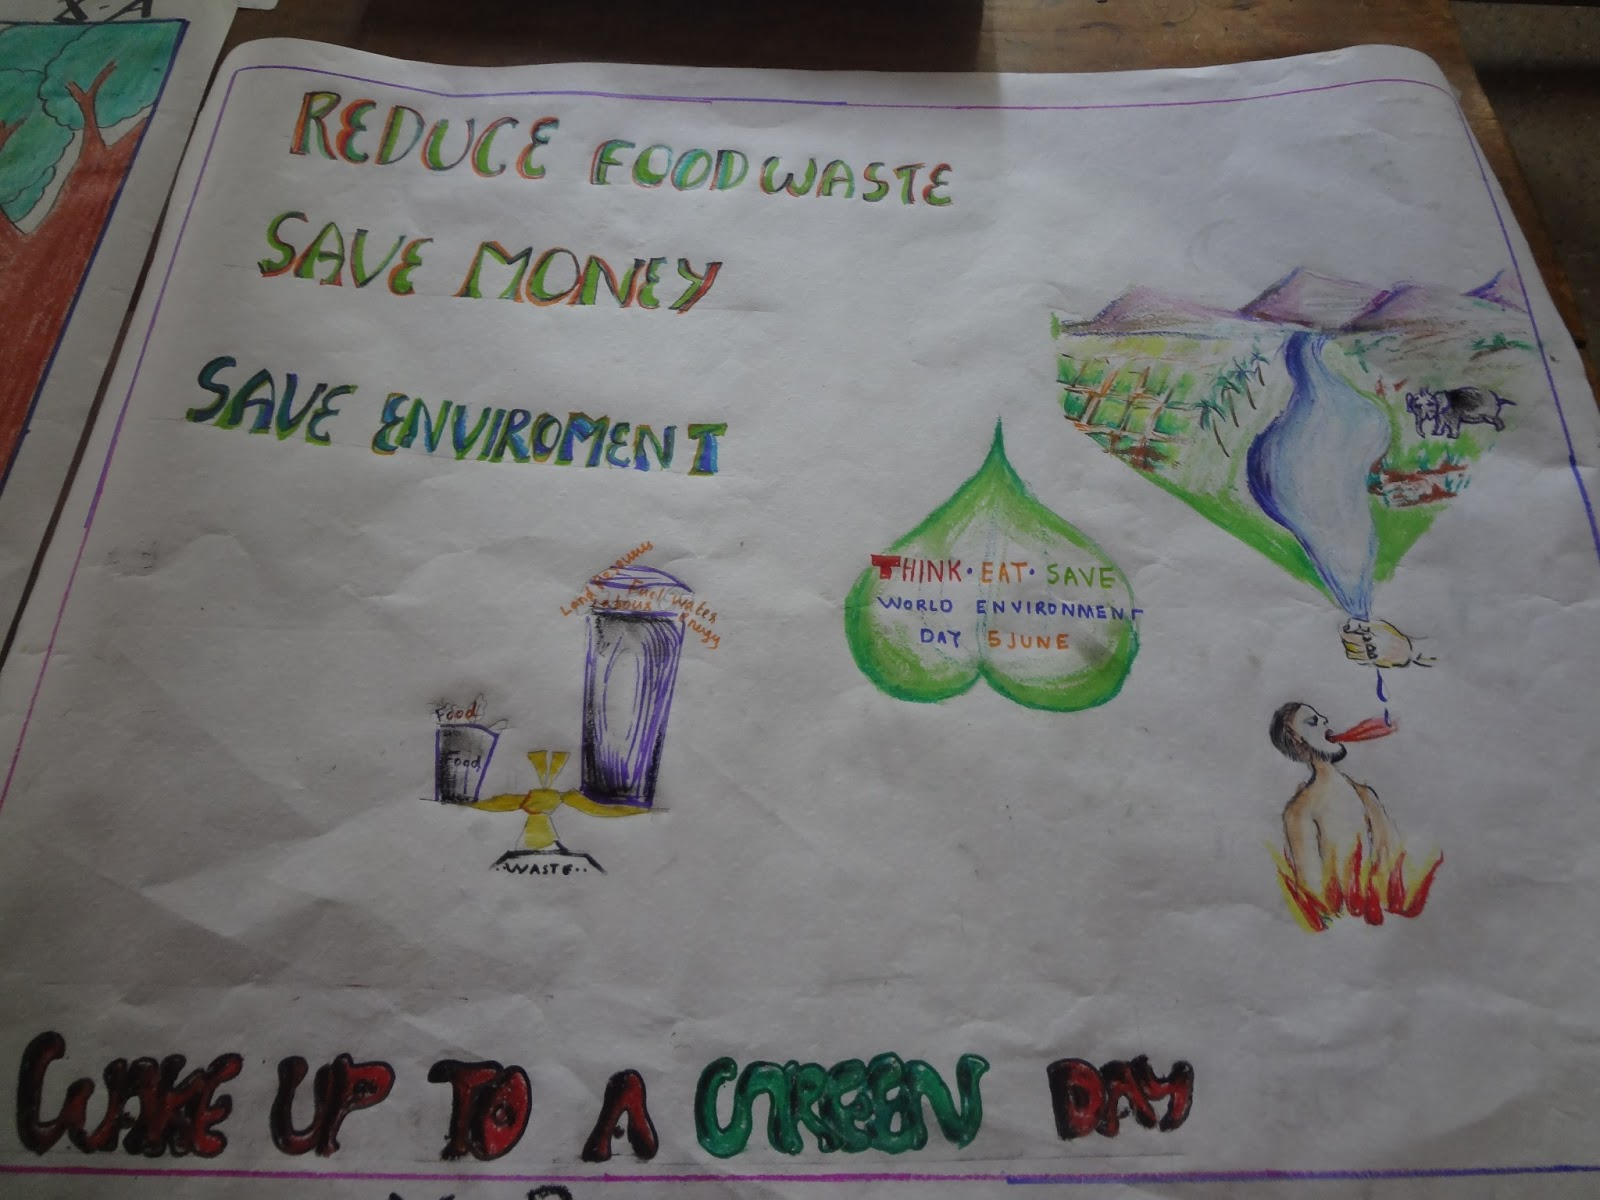 Poster design environment day - Vidyamrutham Arogyamrutham 5 06 2013 World Environment Day Observation At Ihrd Nellissery Poster Making And Seminar On Environment Protection Papers